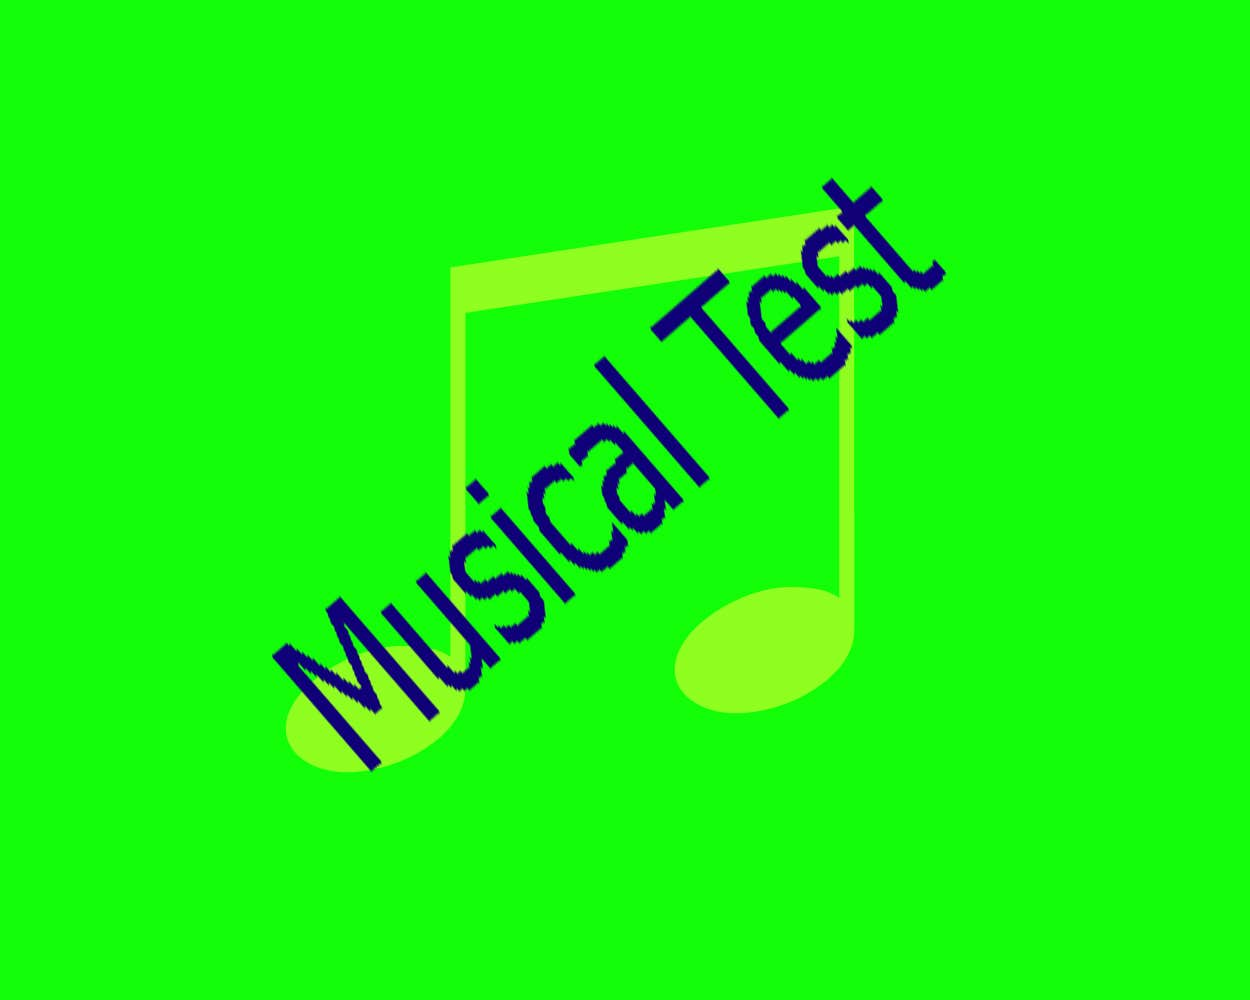 Play Musical test